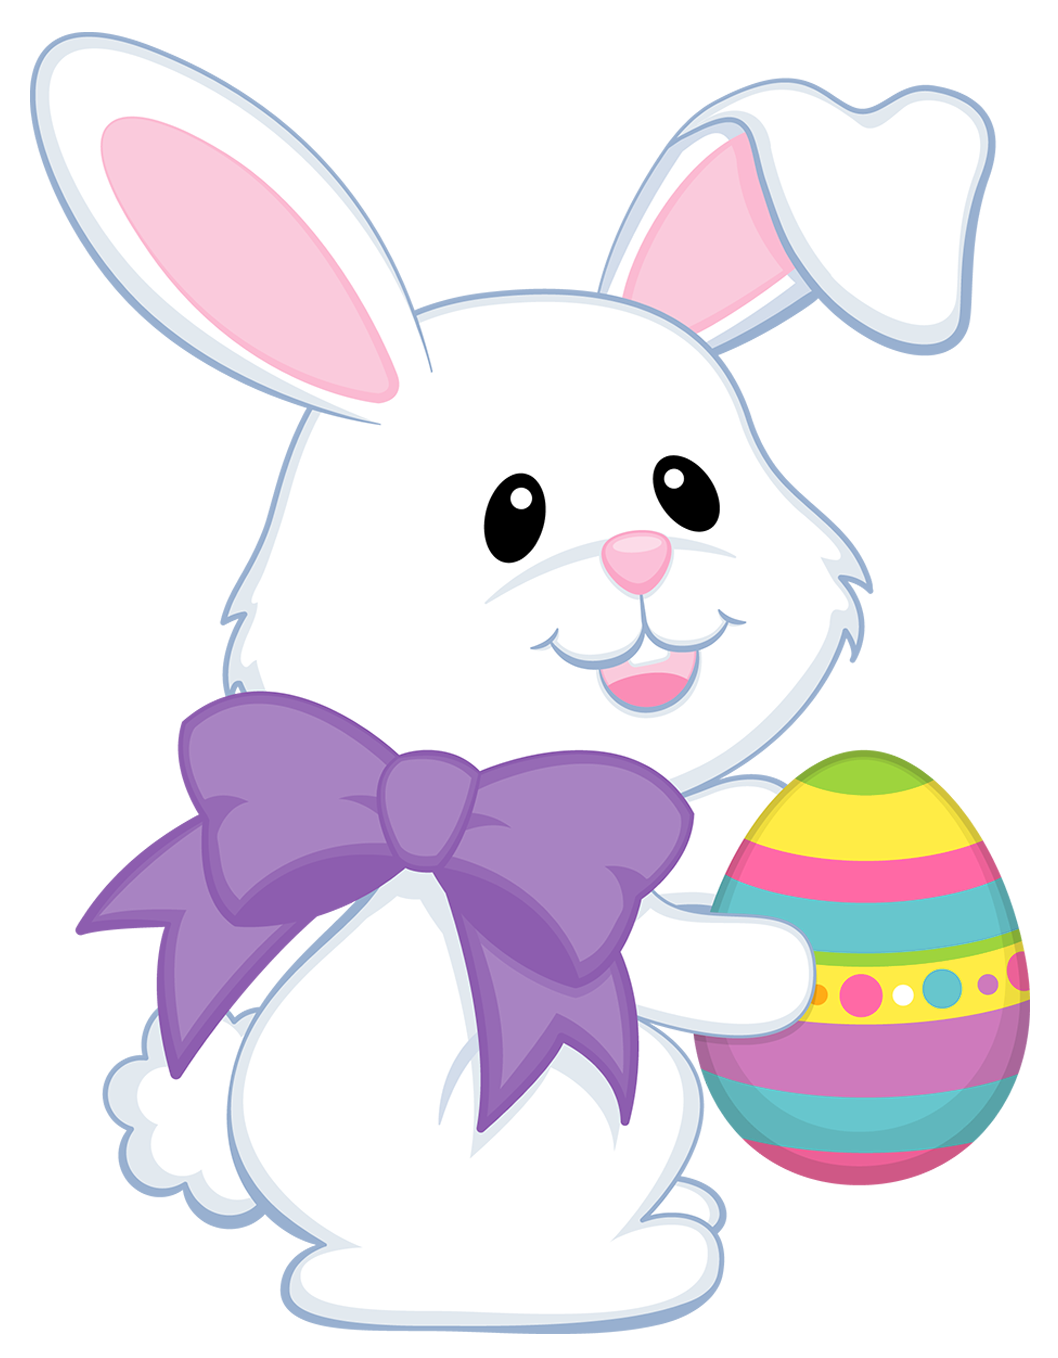 Http Gallery Yopriceville Com Var Albums Free Clipart Pictures Easter Pictures Png Easter Cute B Cute Easter Bunny Cute Easter Pictures Easter Bunny Pictures